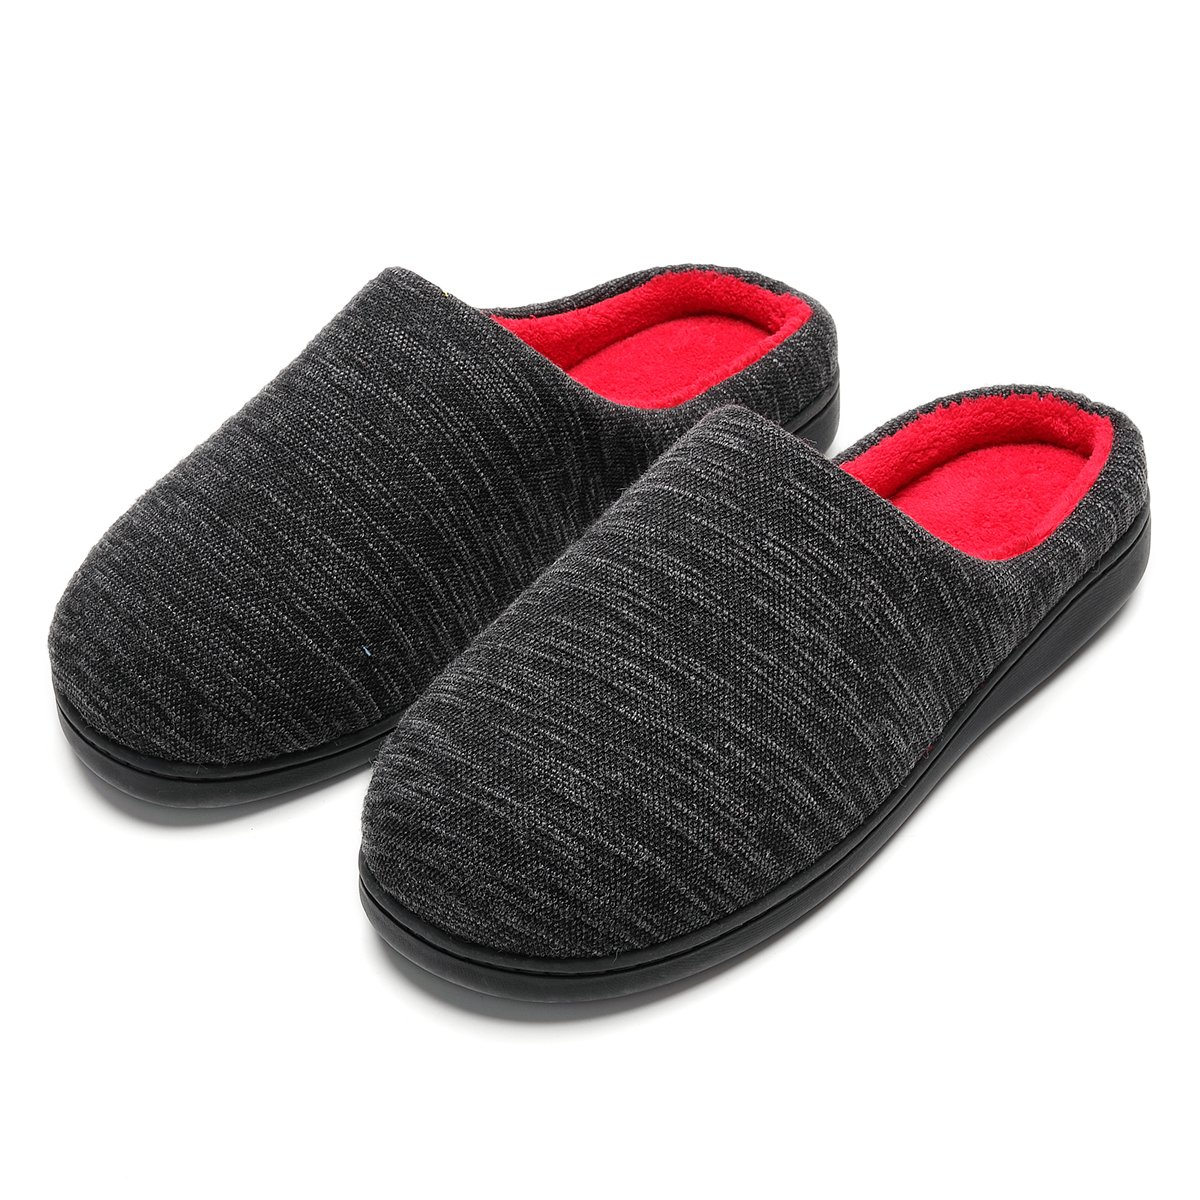 Cozy Spa House Indoor Slippers for Men Warm Lining Clog Furry Slippers by Harrms (Image #2)